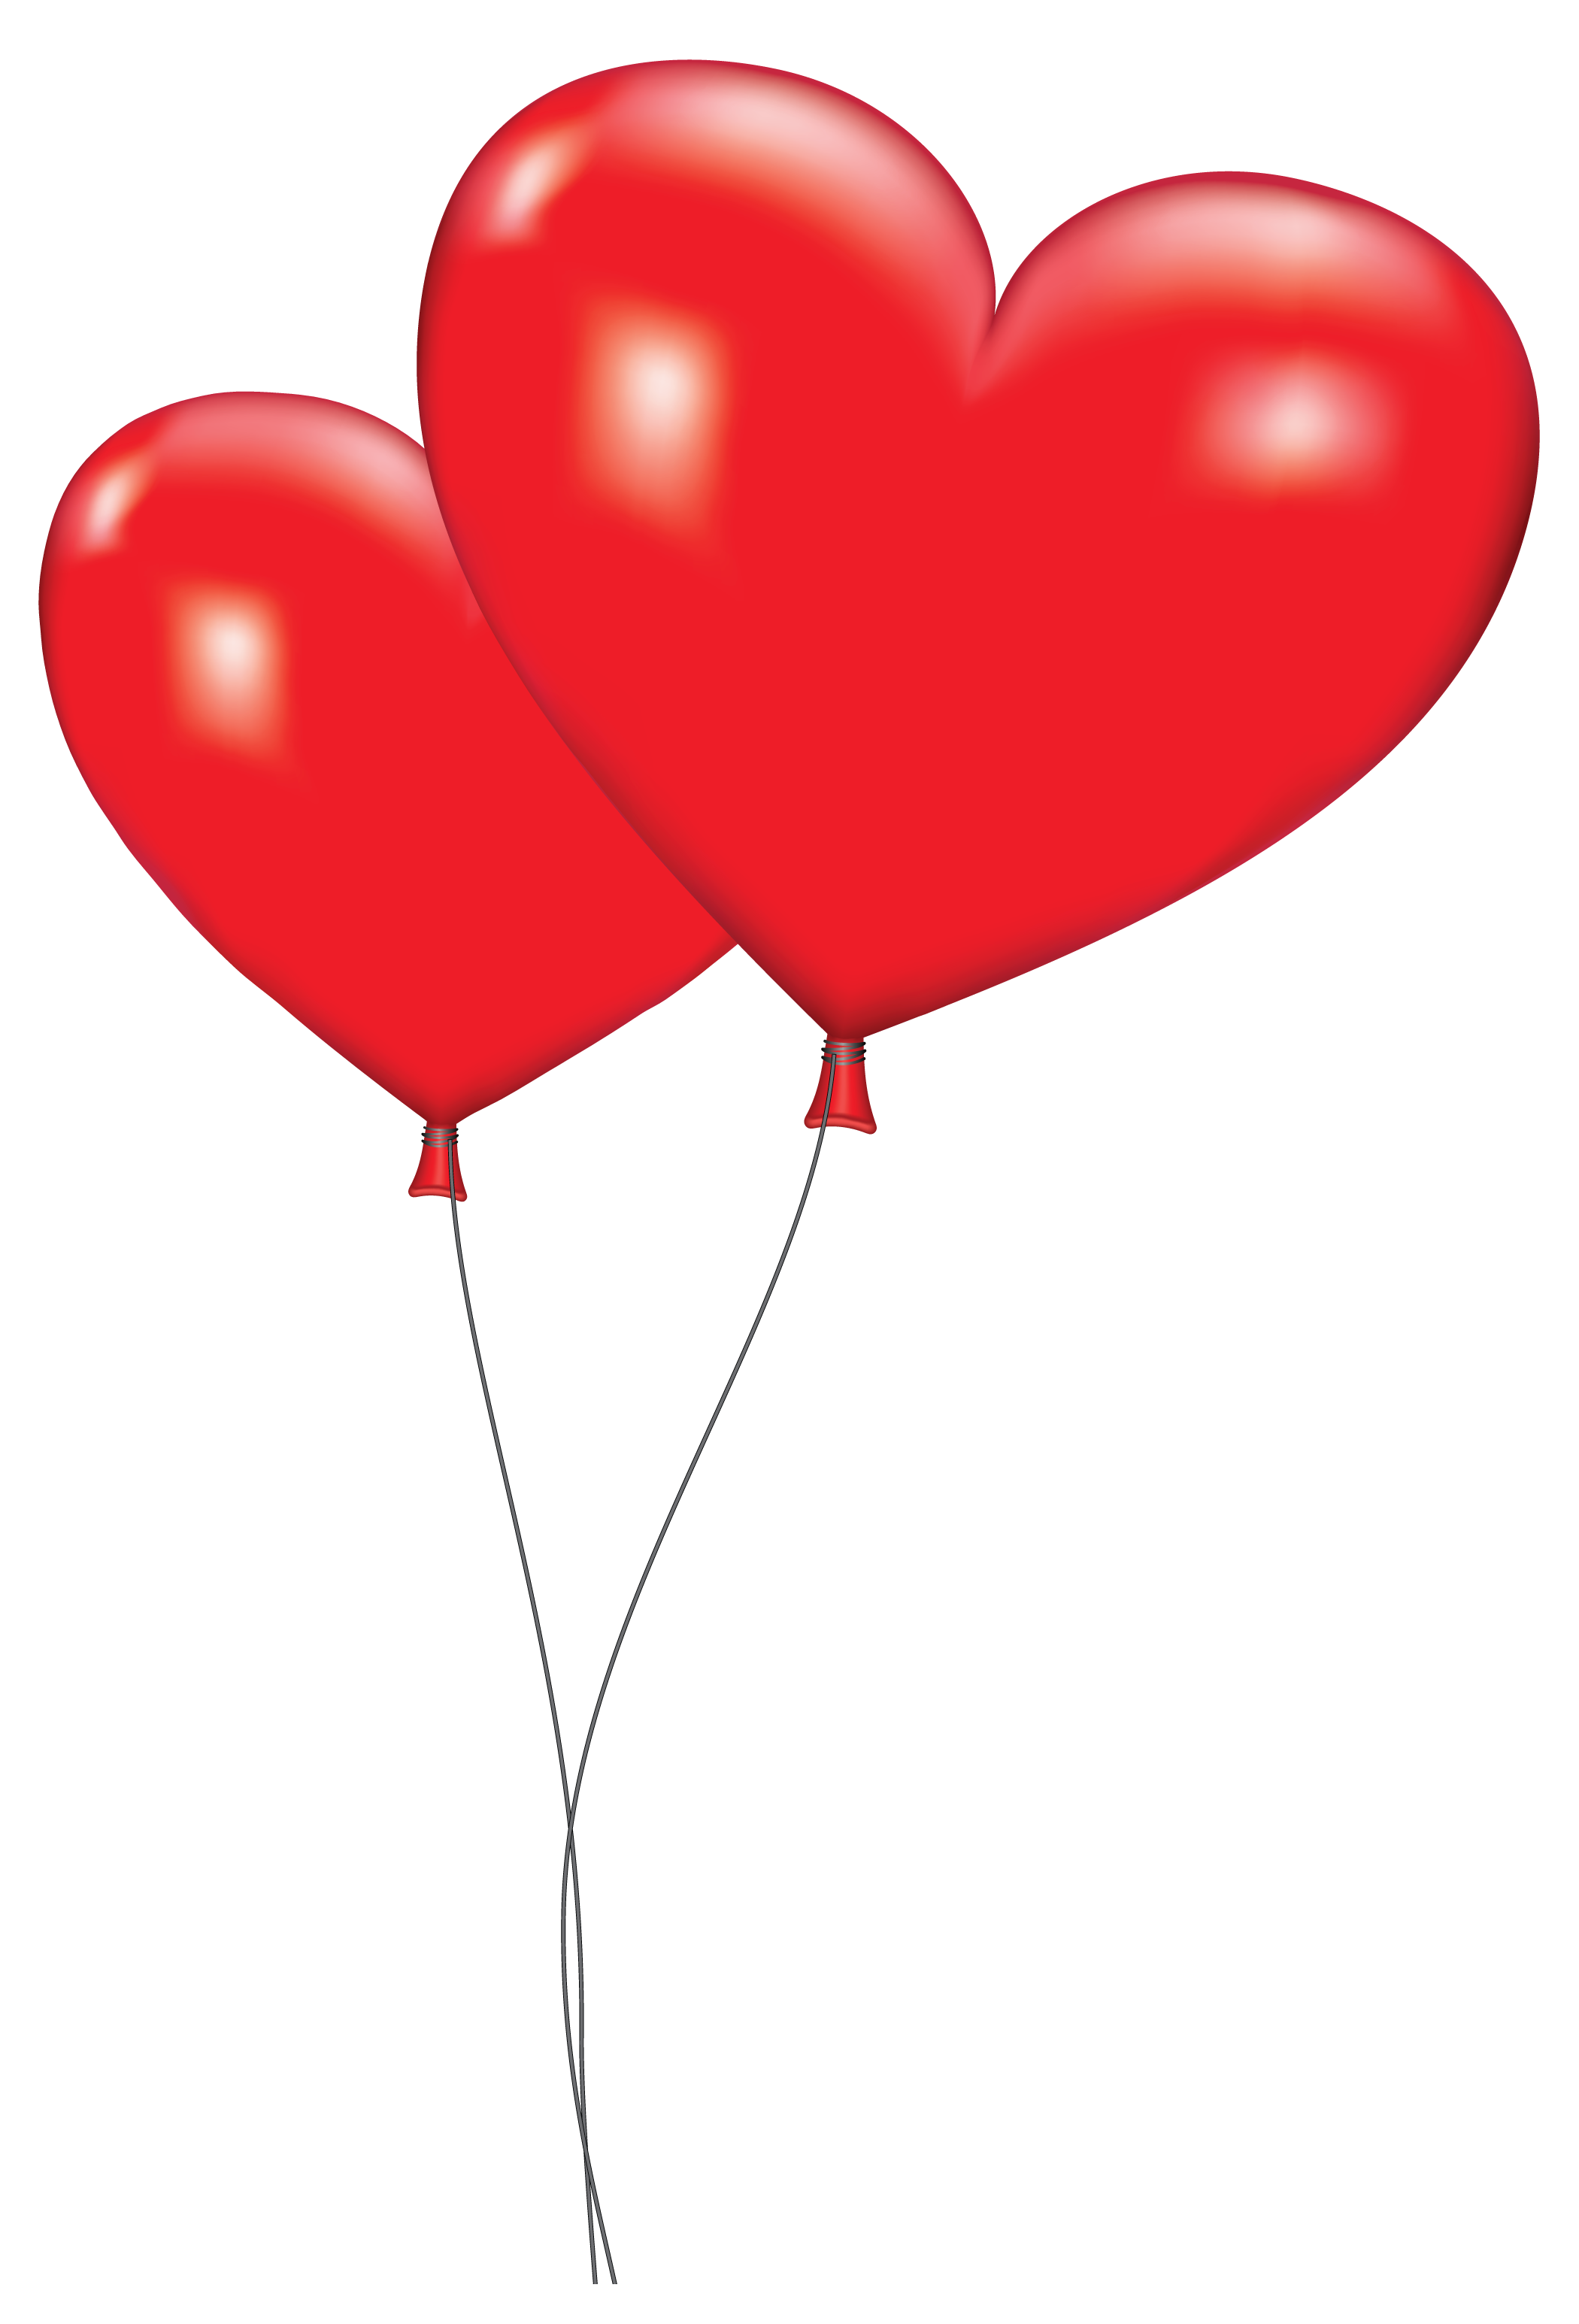 Orange balloon clipart large red heart balloons png - How to make heart balloon ...